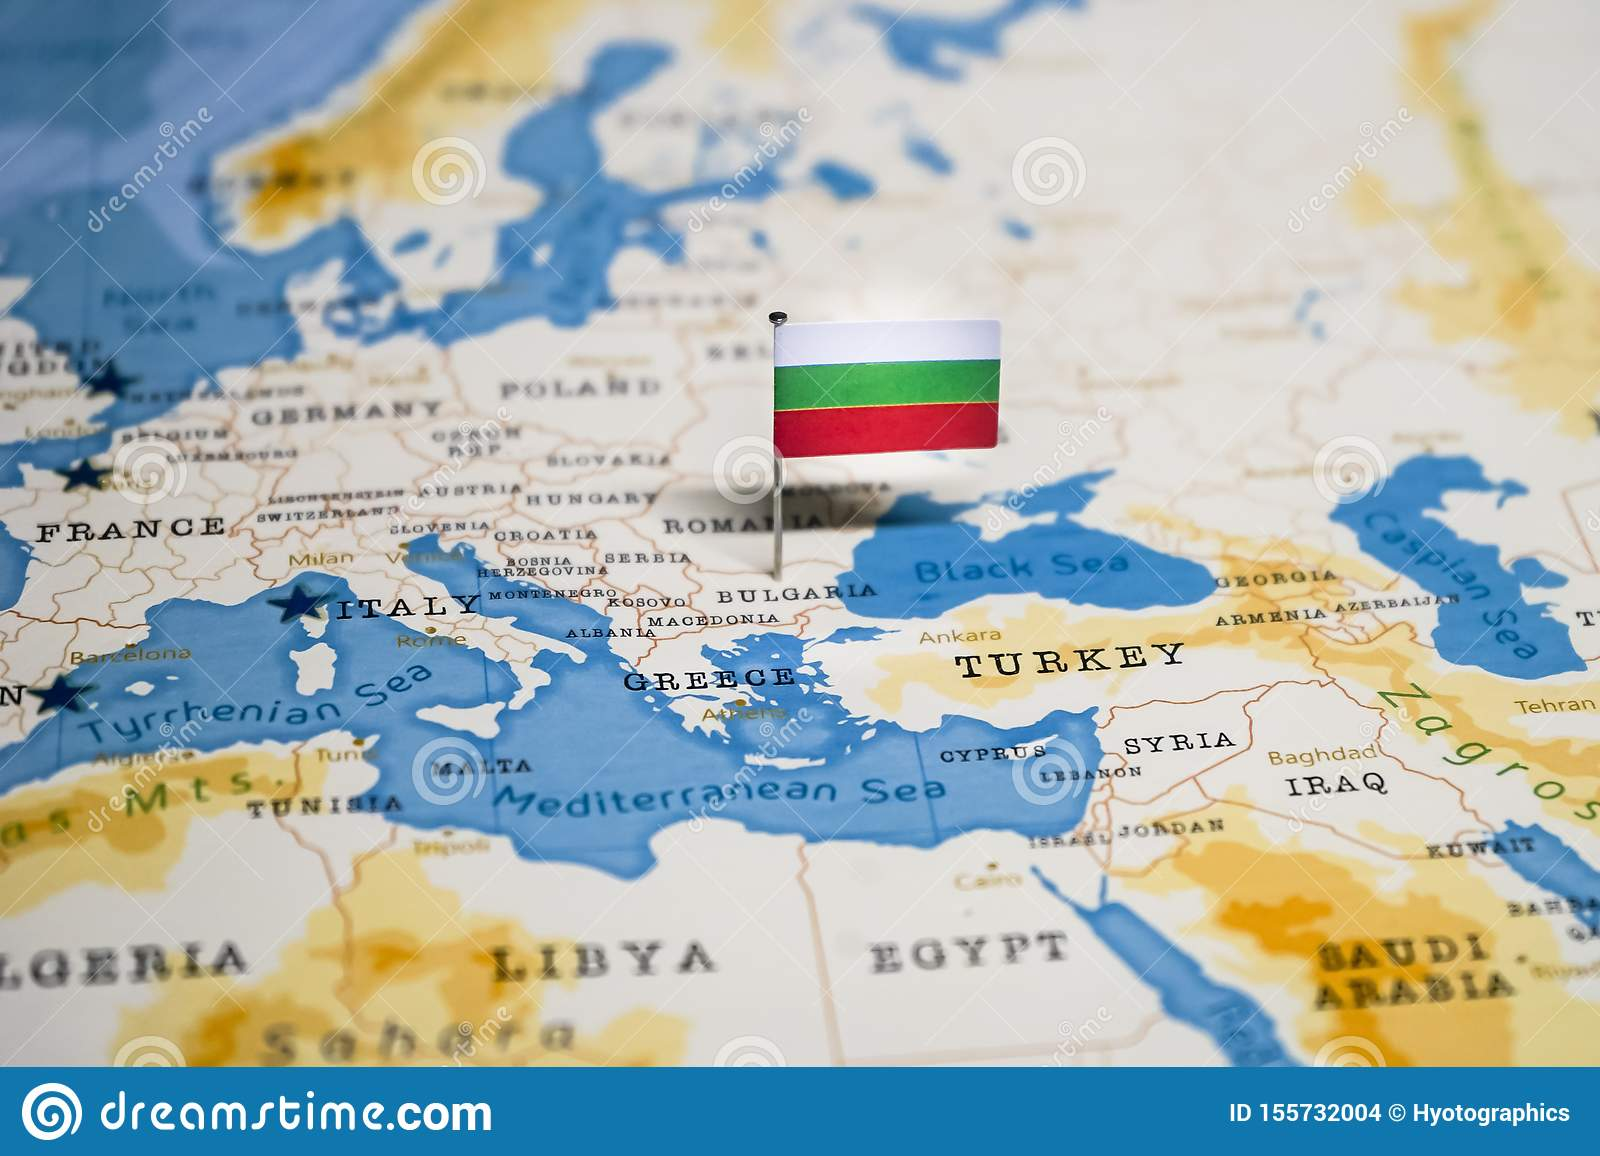 Picture of: The Flag Of Bulgaria In The World Map Stock Photo Image Of Country Atlas 155732004